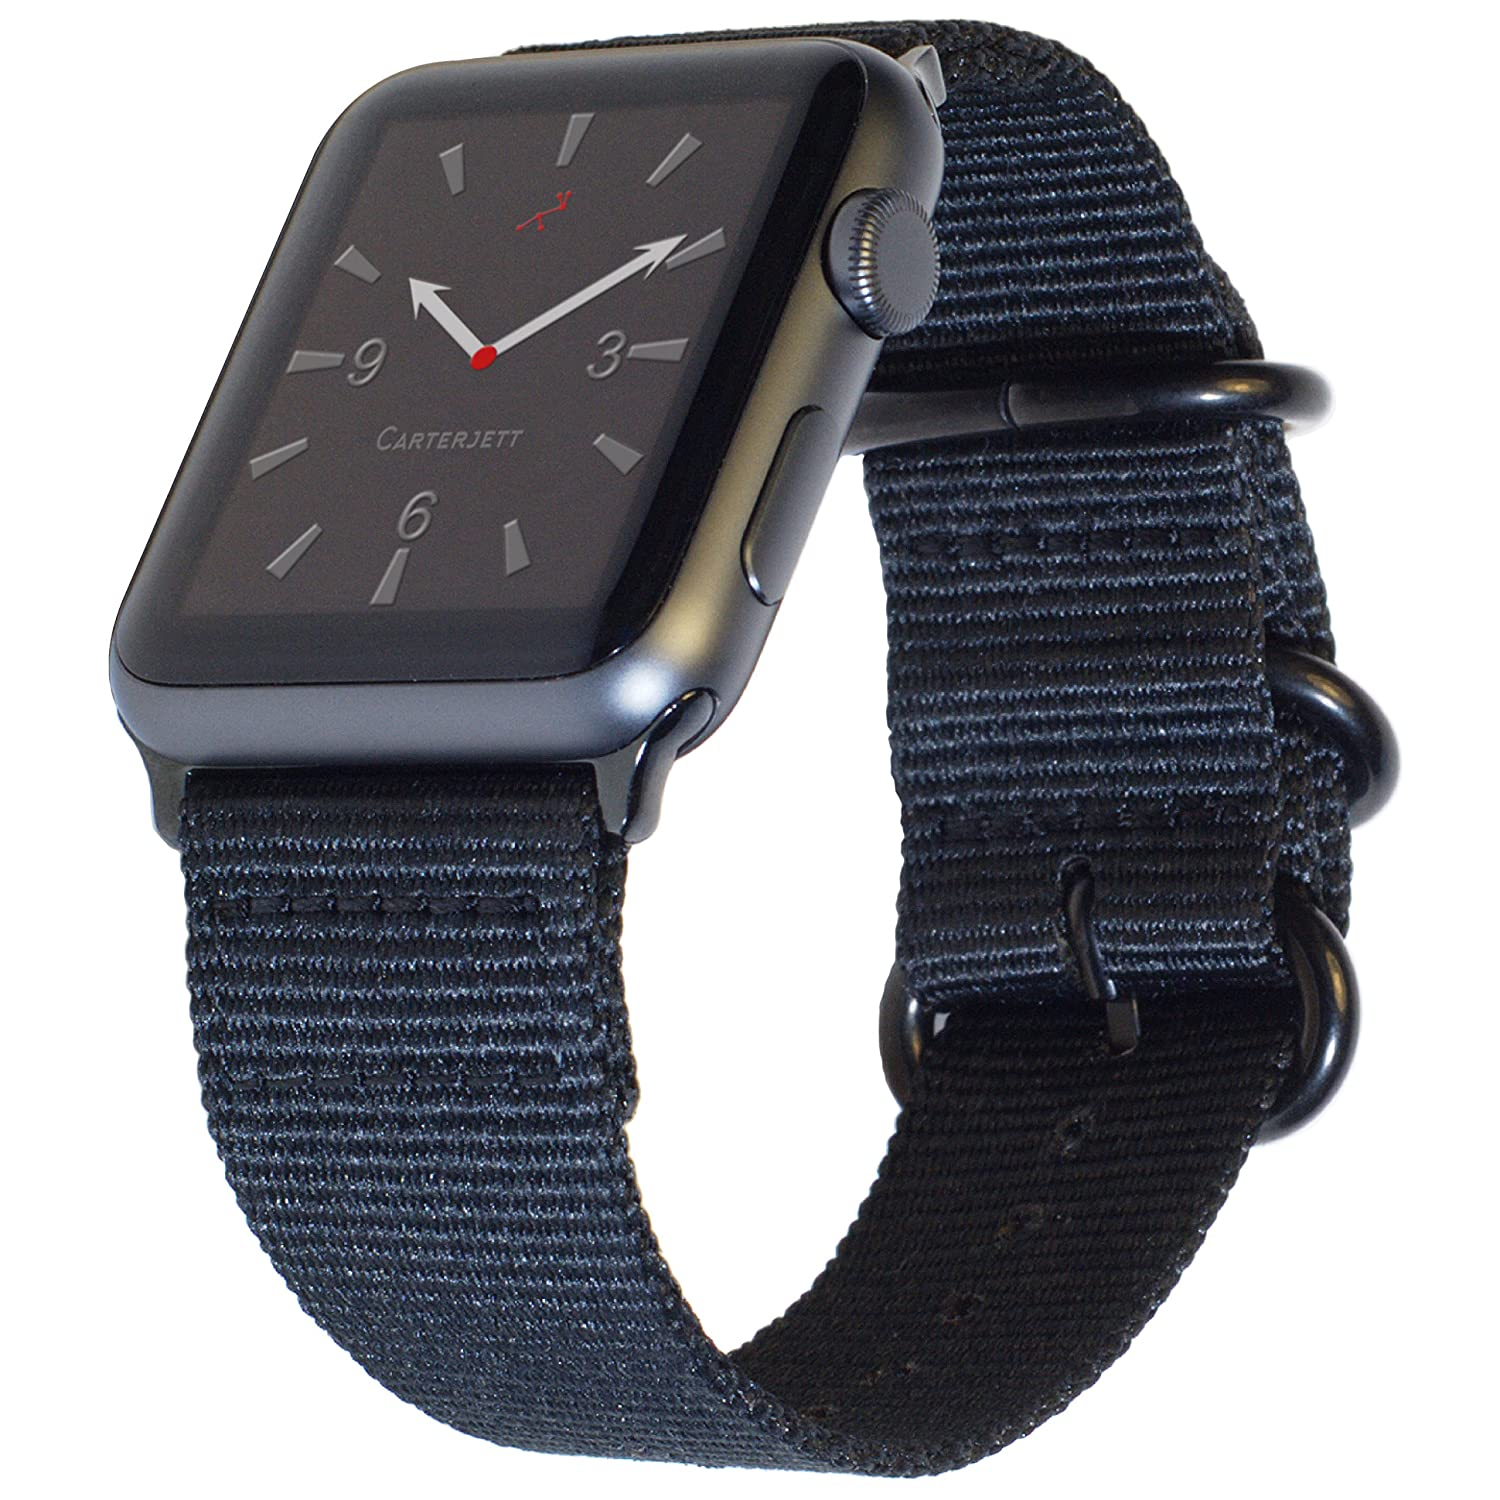 e053975fd720 Carterjett Compatible Apple Watch Band 42mm 44mm Men Women Nylon iWatch  Band Replacement Wrist Strap Rugged NATO Loop Buckle Compatible Apple Watch  Series 4 ...